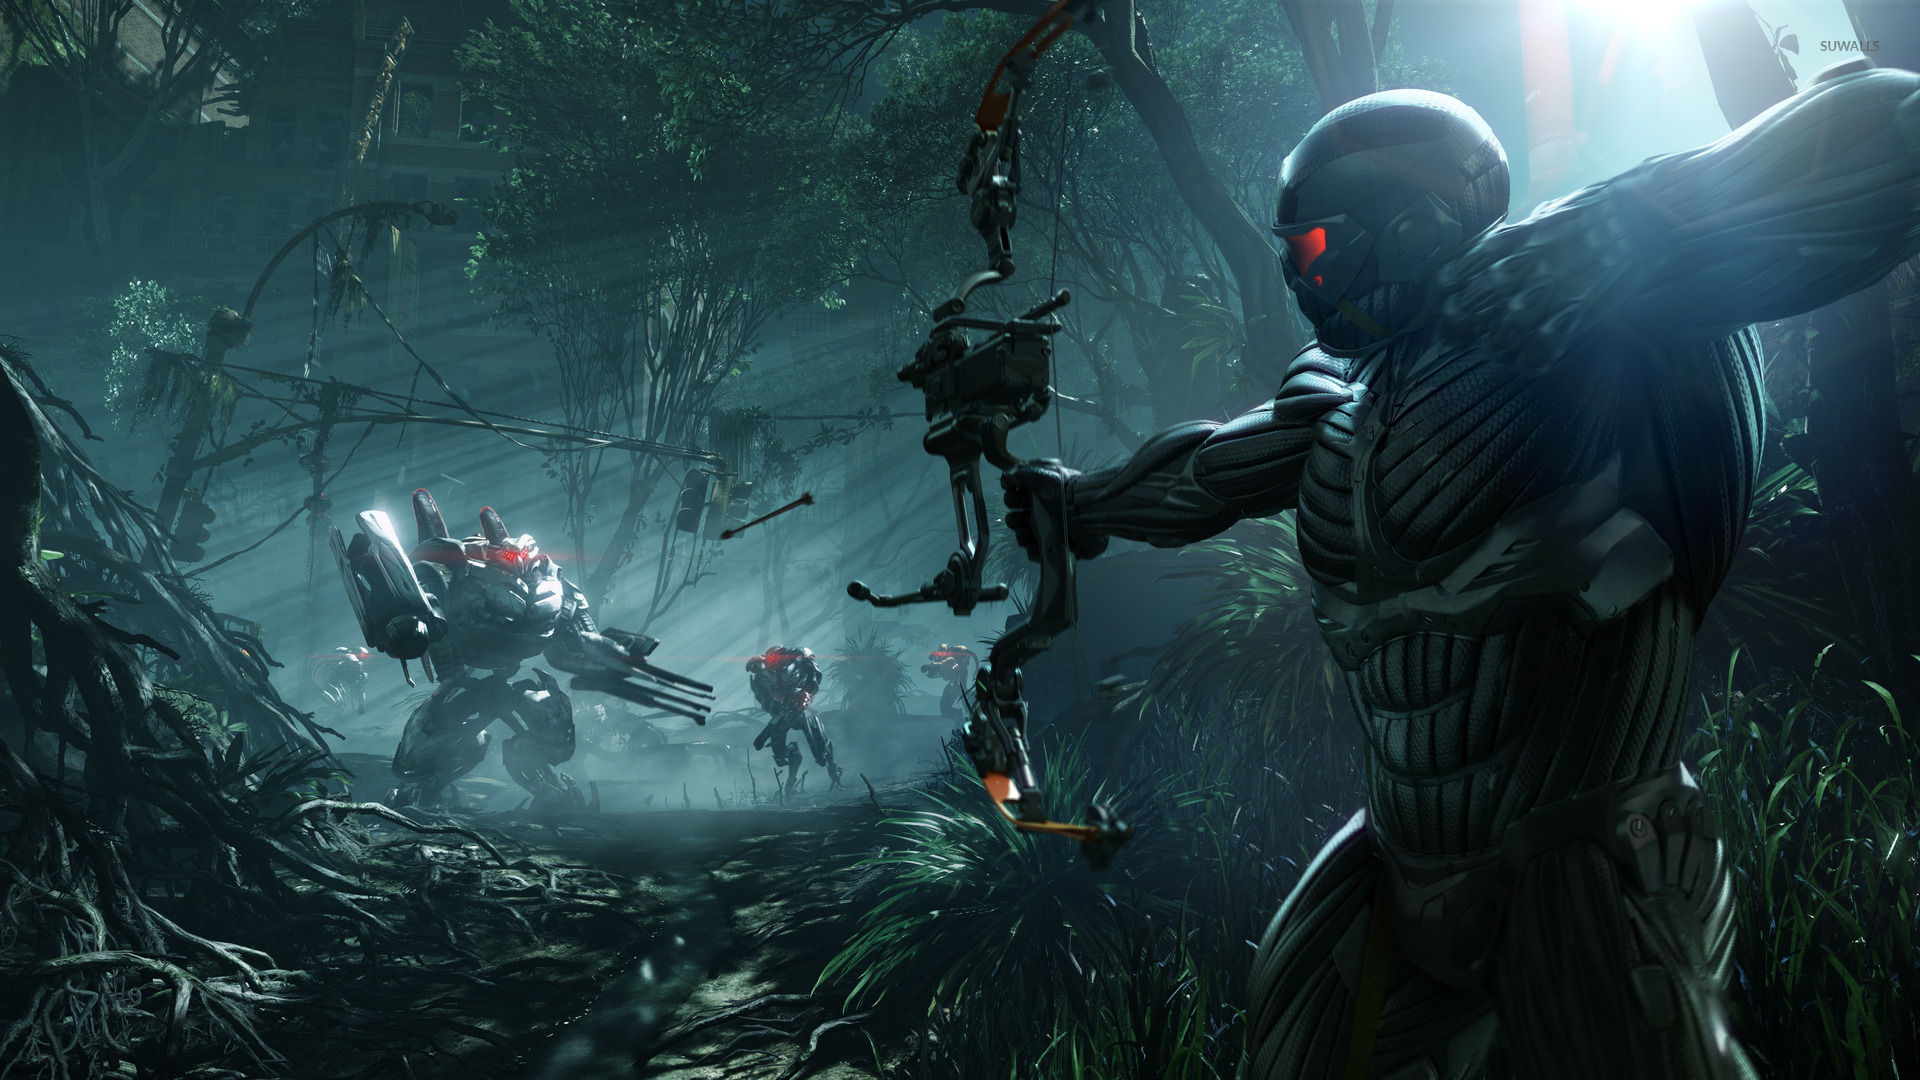 Crysis 3 2 Wallpaper Game Wallpapers 17151